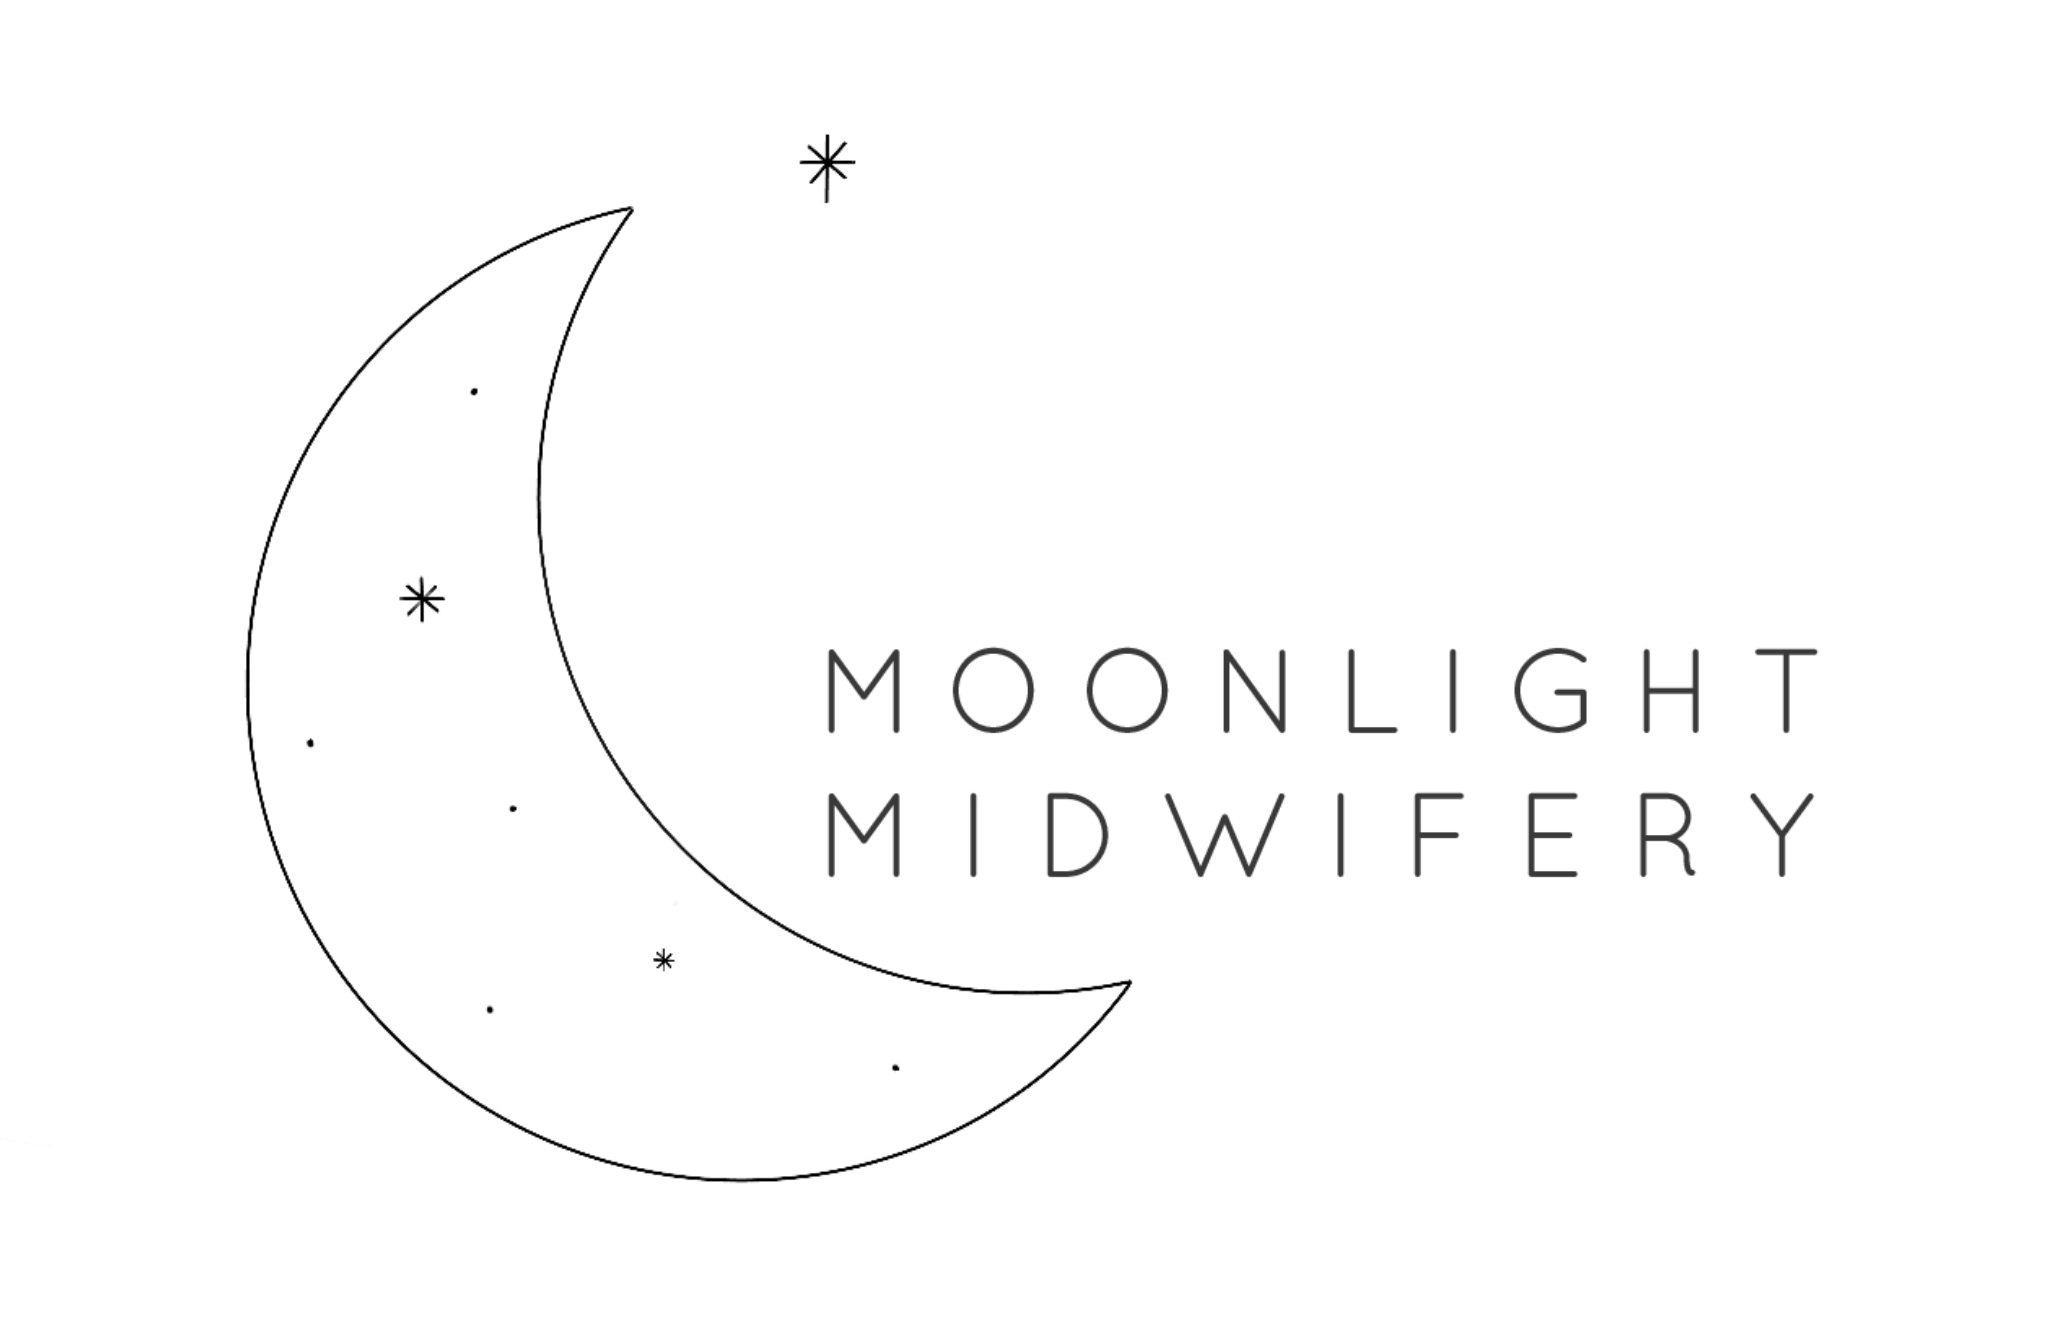 Moonlight Midwifery